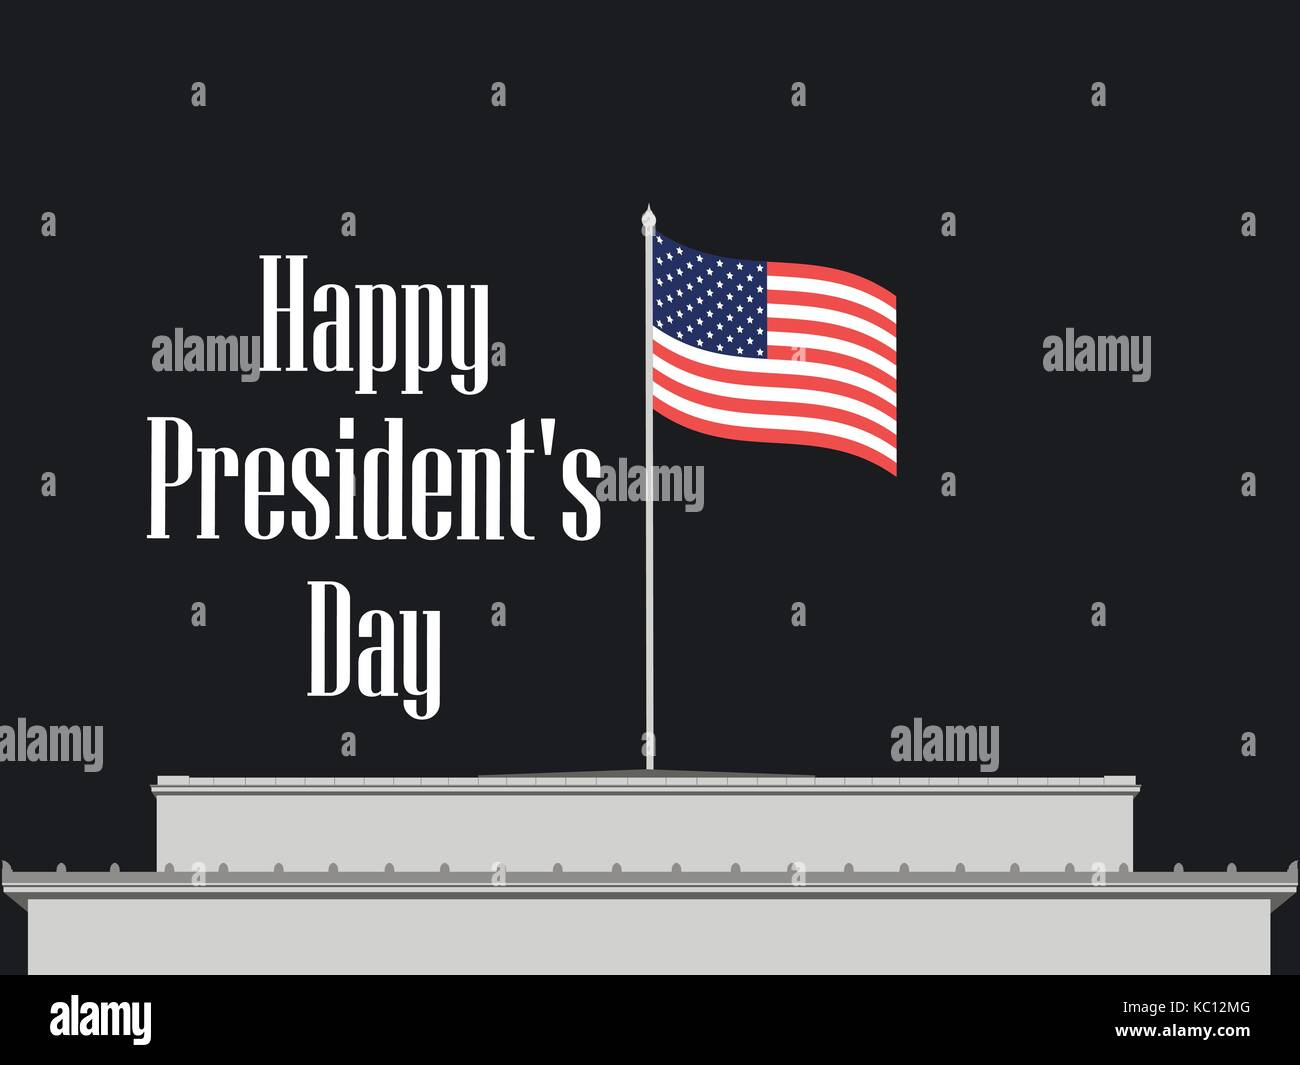 Happy Presidents Day. American flag on a building roof. Vector illustration - Stock Vector